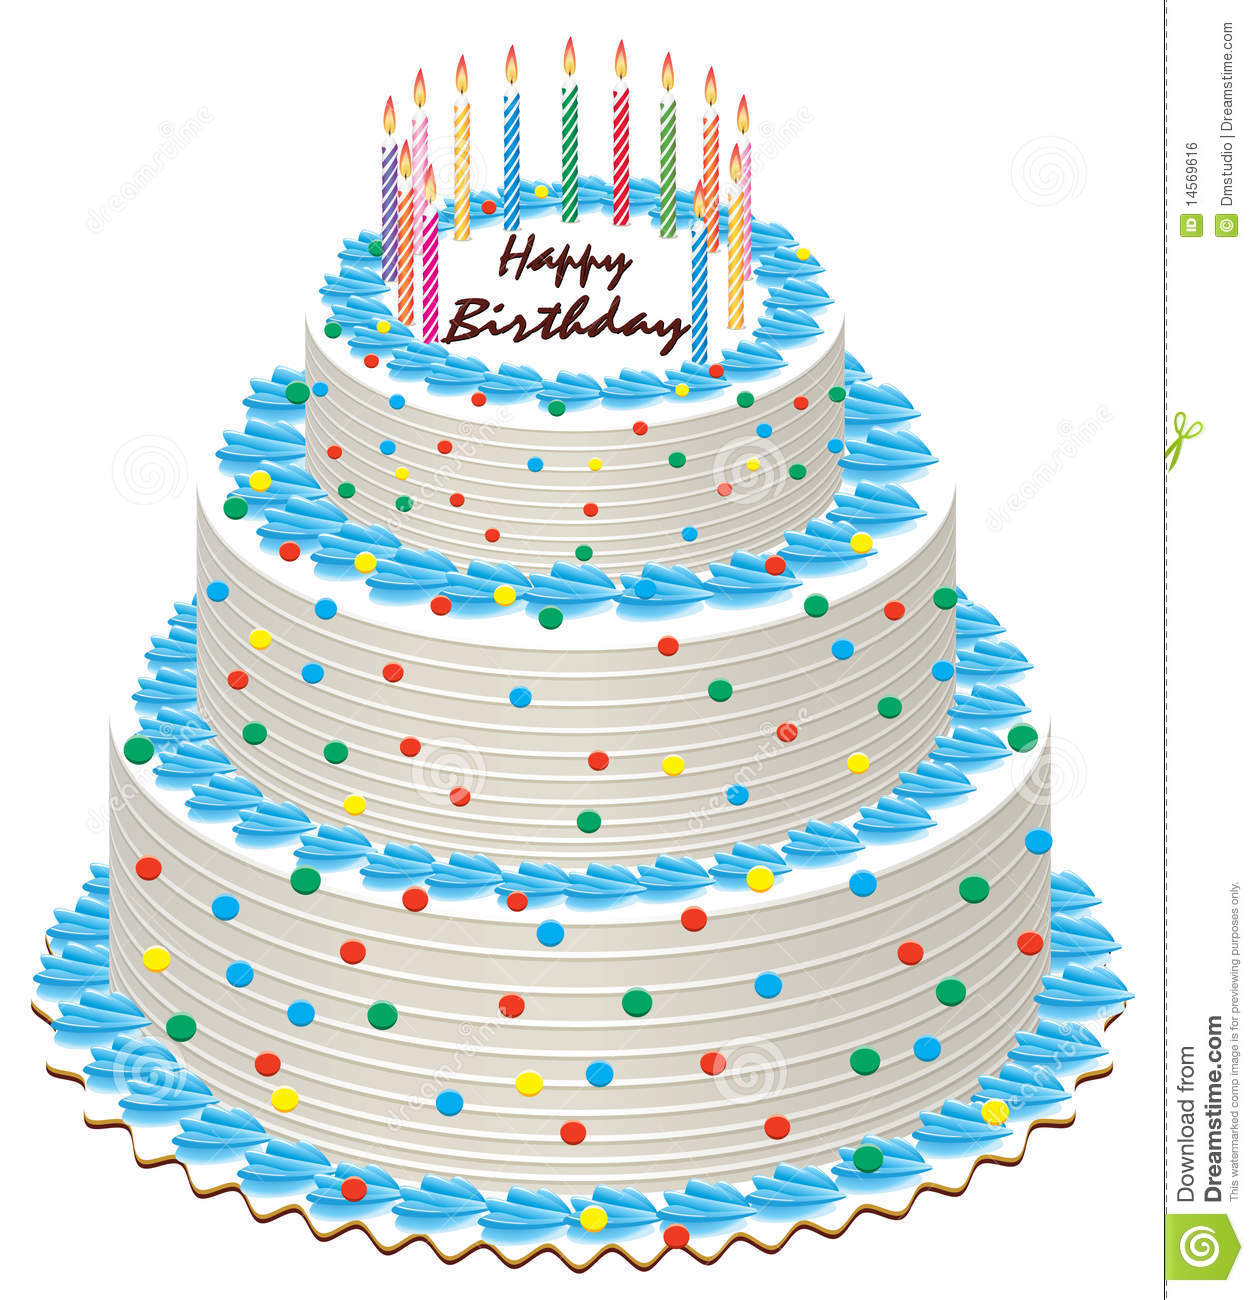 Birthday Cake Stock Vector. Illustration Of Color